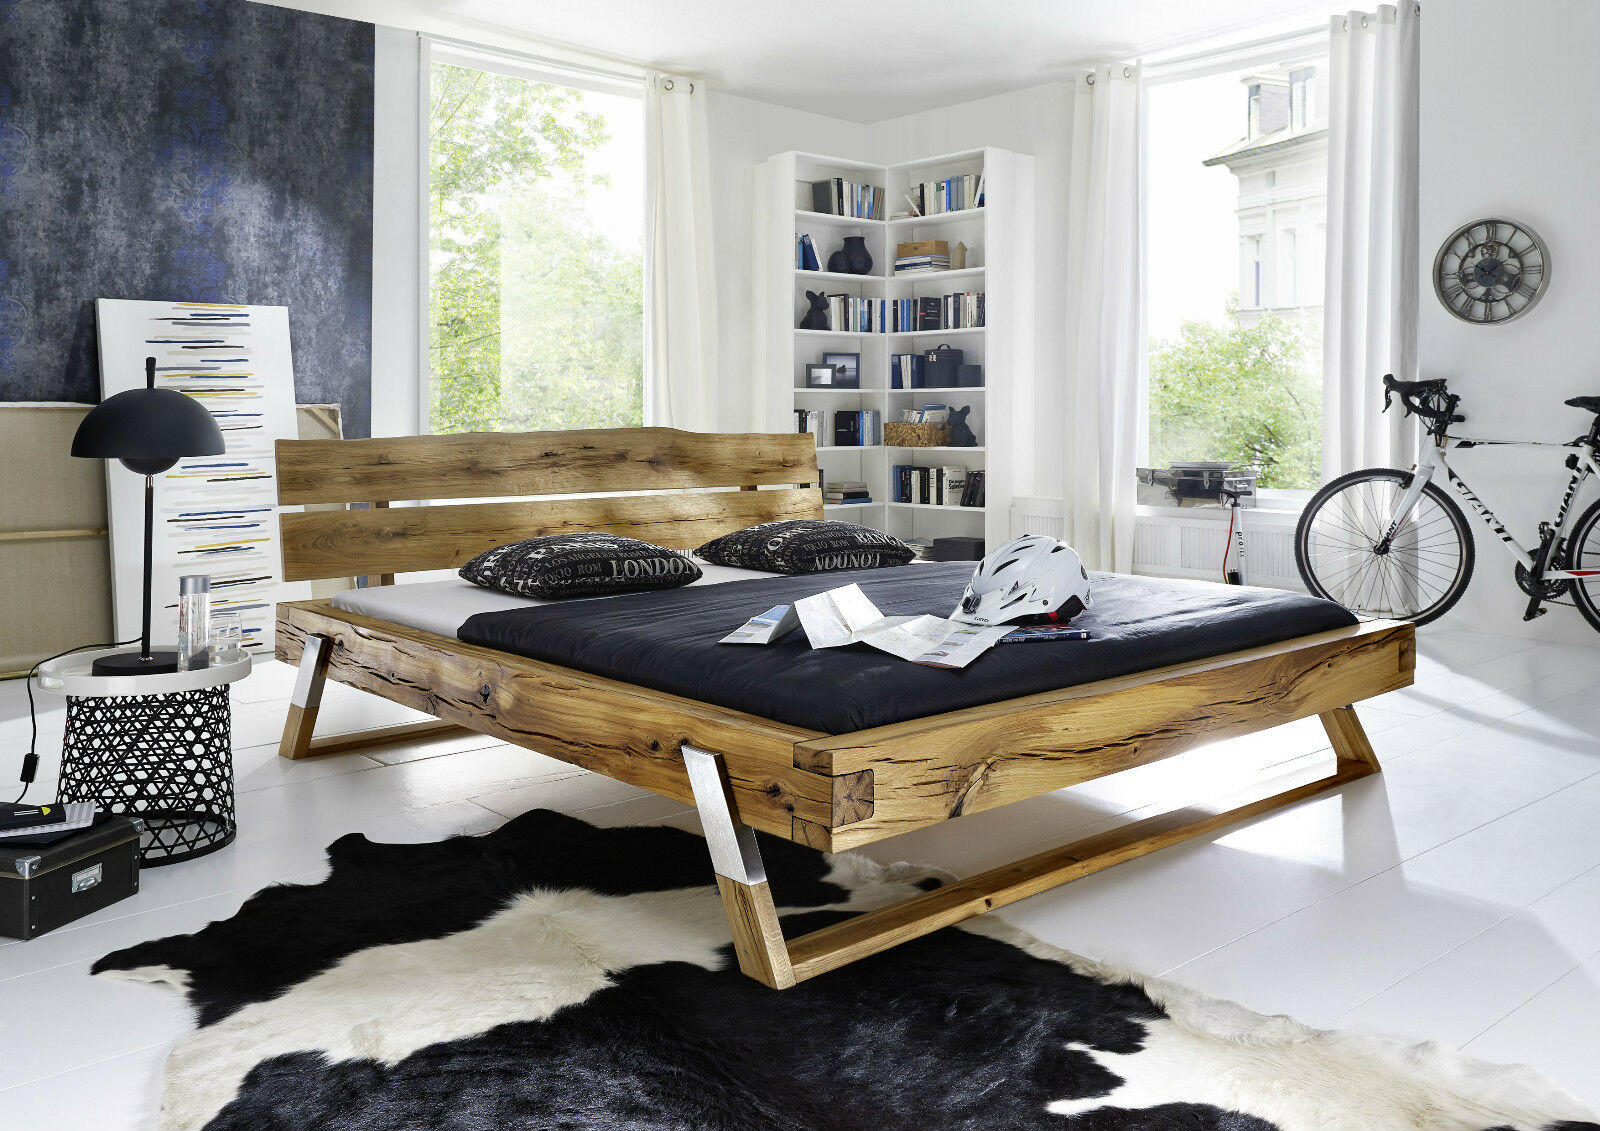 bett timber 105 bettgestell holzbett schlafzimmer wildeiche massiv 140x200 cm eur 799 00. Black Bedroom Furniture Sets. Home Design Ideas